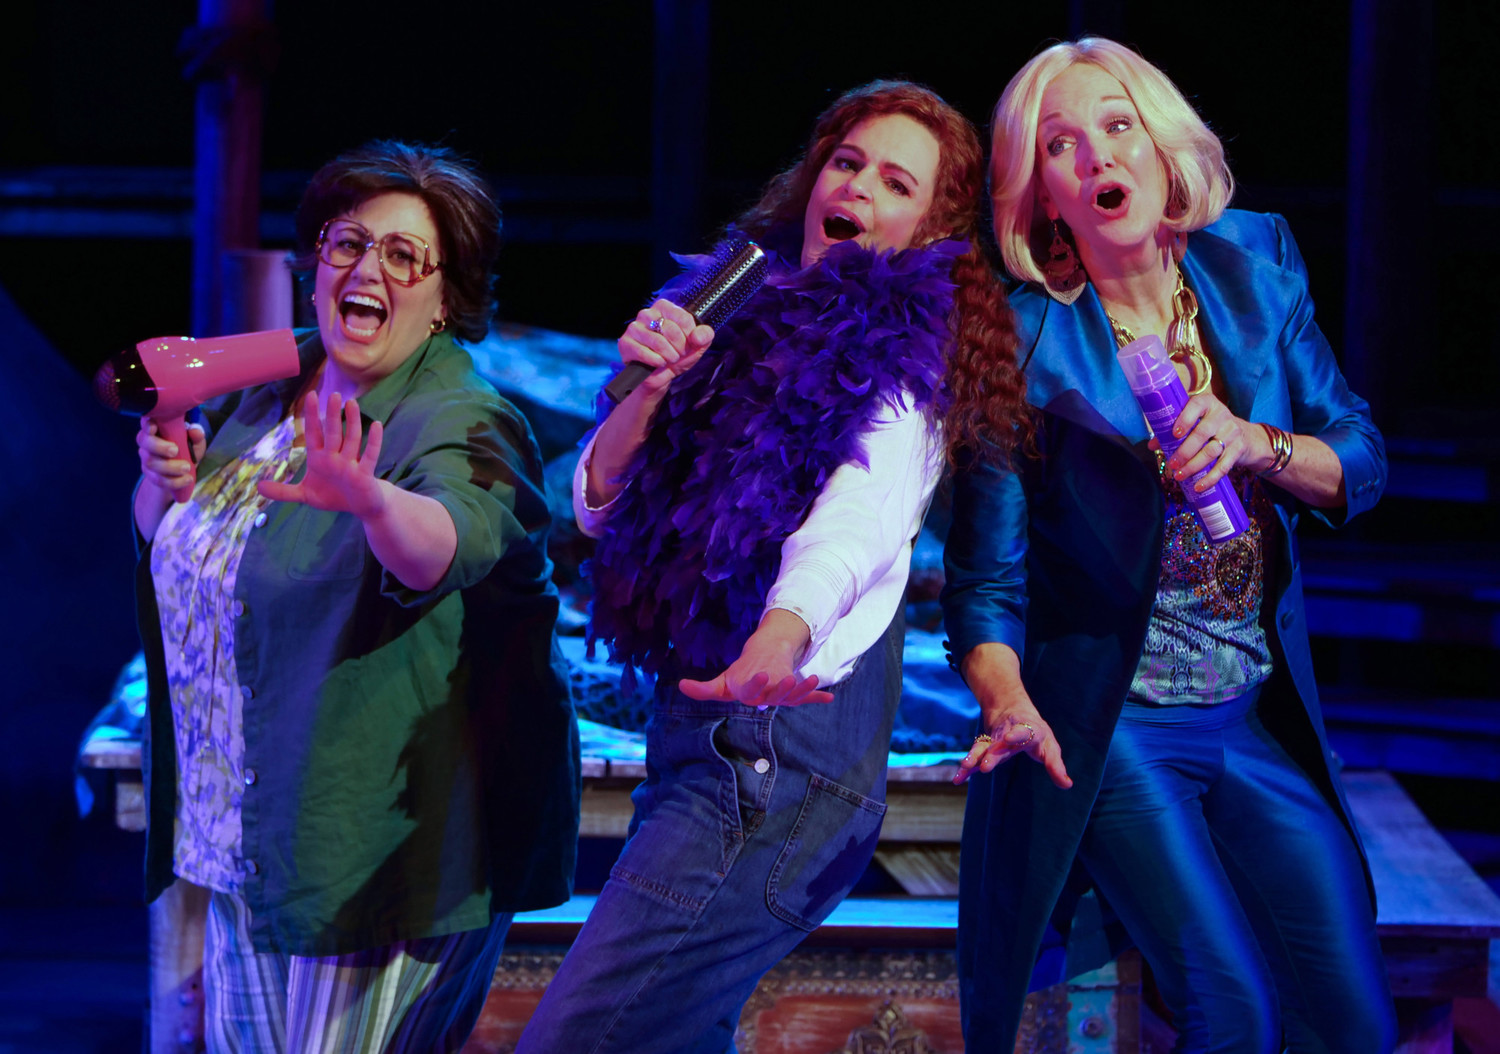 BWW Review: MAMMA MIA! at Chanhassen Dinner Theatres